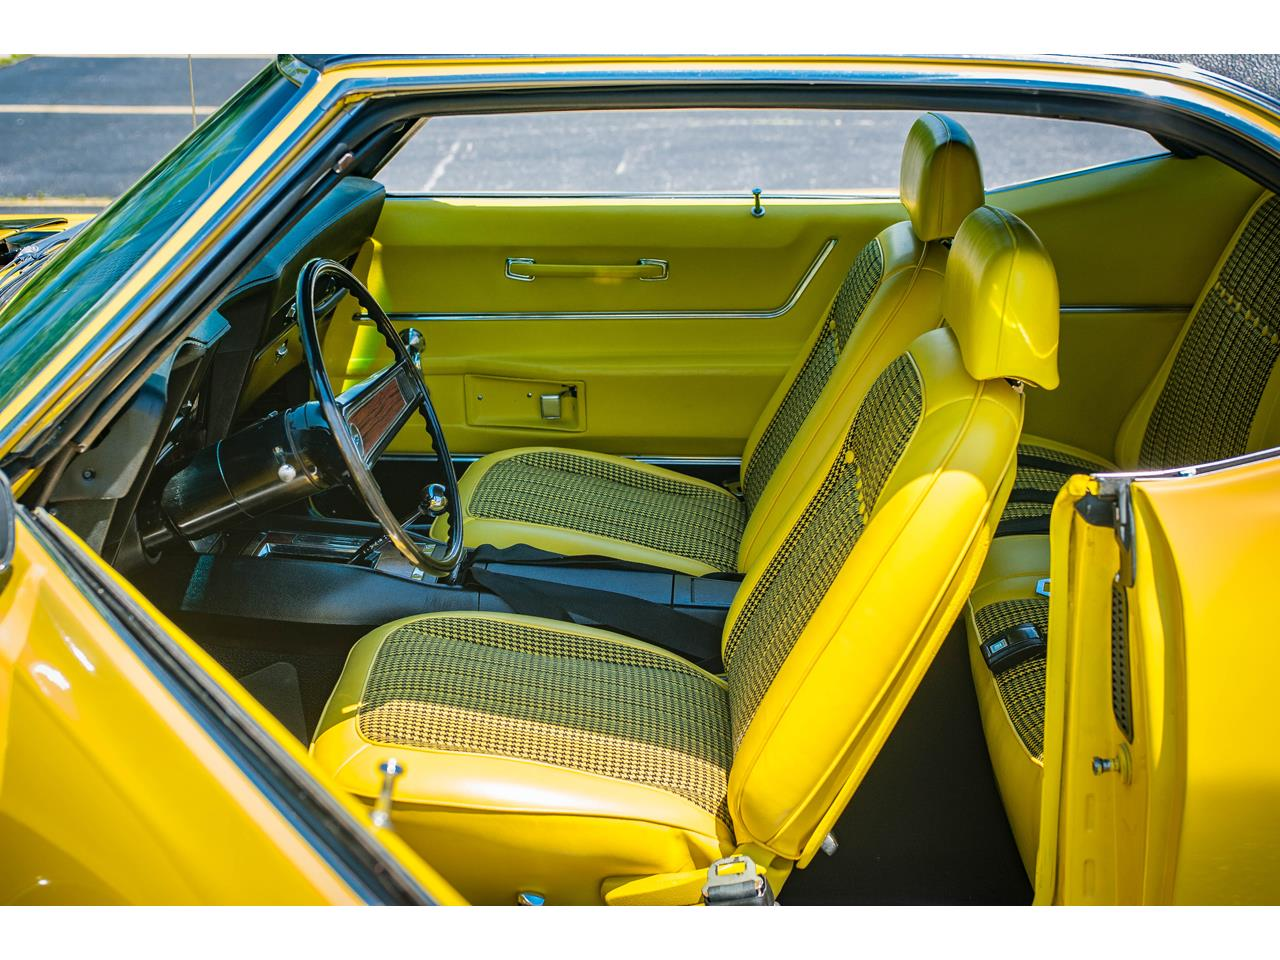 Large Picture of Classic '69 Chevrolet Camaro located in Illinois Offered by Gateway Classic Cars - St. Louis - QB9B